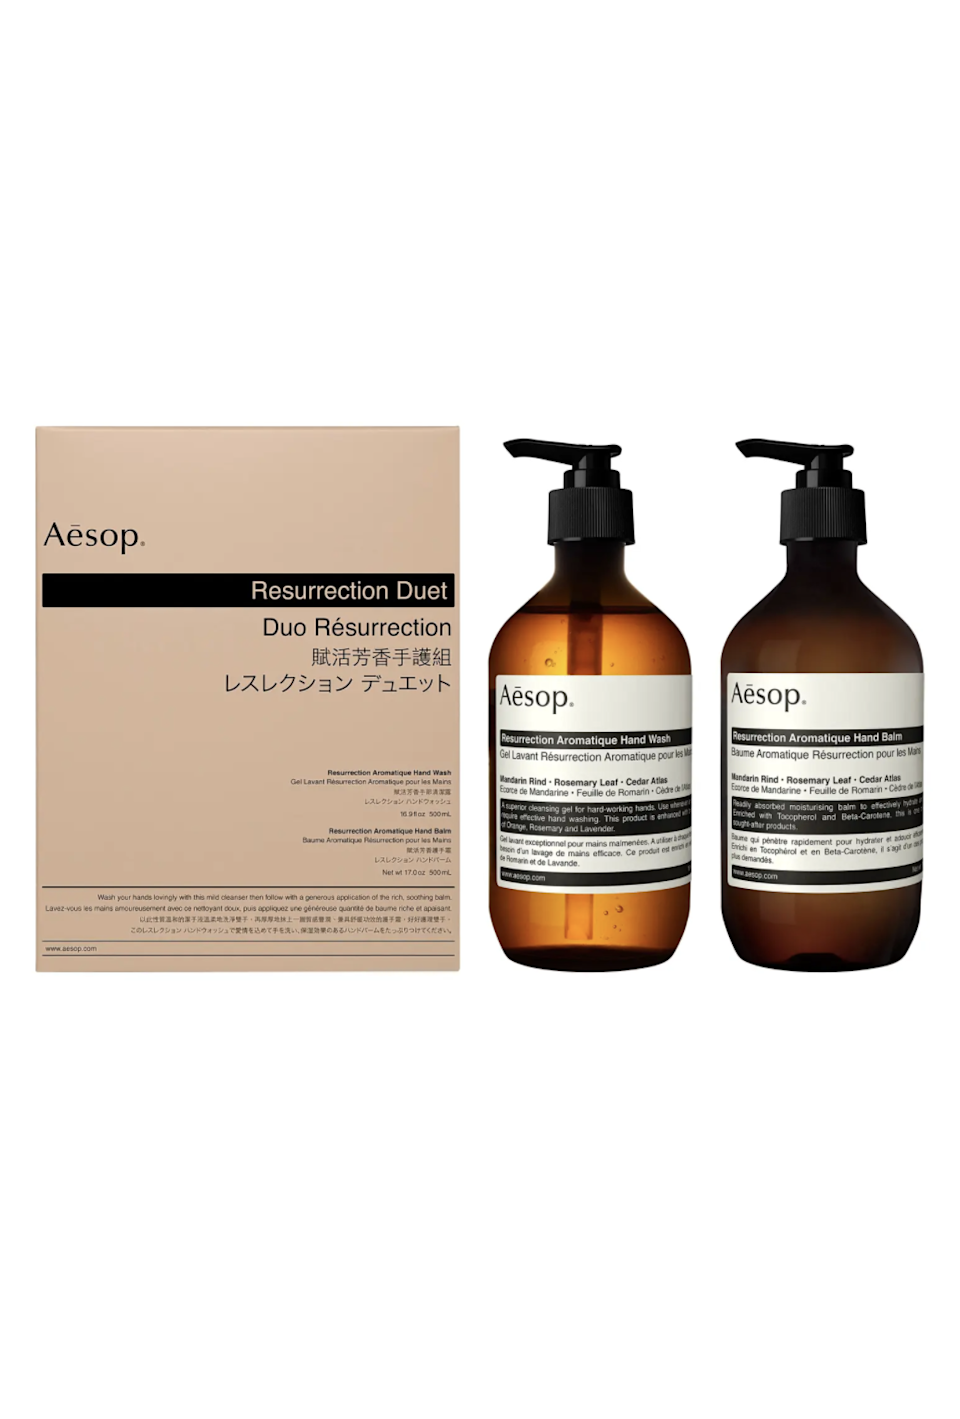 """<h2>Aesop Resurrection Aromatique Hand Wash & Hand Balm Duet</h2><br>We all wash our hands, so might as well make it an olfactory experience with this Aesop duo.<br><br><strong>Aesop</strong> Resurrection Aromatique Hand Wash & Hand Balm Duet, $, available at <a href=""""https://go.skimresources.com/?id=30283X879131&url=https%3A%2F%2Fwww.nordstrom.com%2Fs%2Faesop-resurrection-aromatique-hand-wash-hand-balm-duet%2F4363815%3F"""" rel=""""nofollow noopener"""" target=""""_blank"""" data-ylk=""""slk:Nordstrom"""" class=""""link rapid-noclick-resp"""">Nordstrom</a>"""